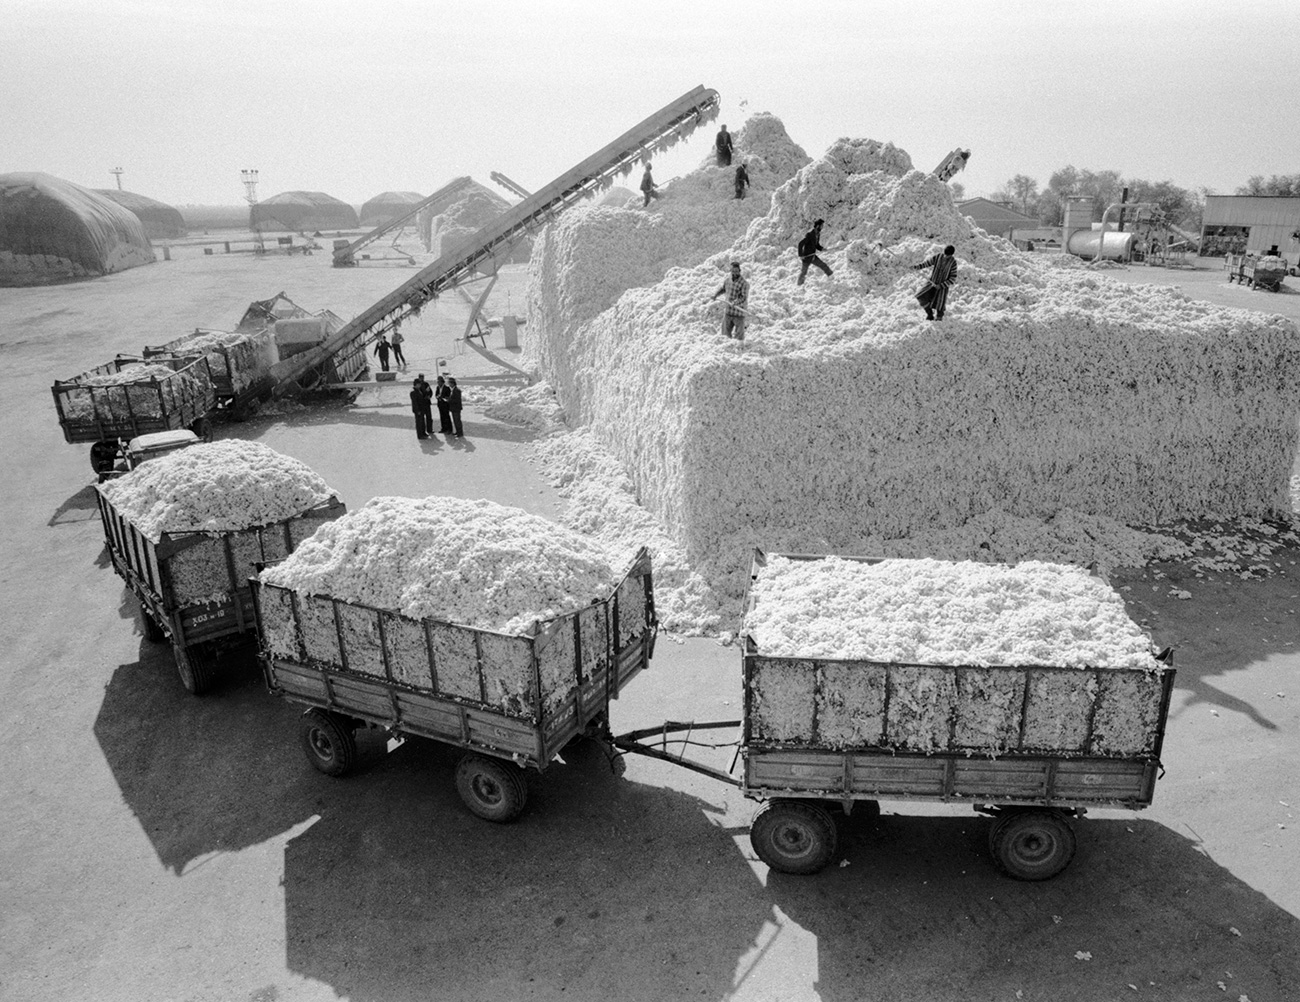 To make up for the shortfall, cottonpickers started putting stones in their sacks, and empty rail carriages were dispatched to Moscow where dishonest officials would take bribes to record them as being full. // Kazakh SSR